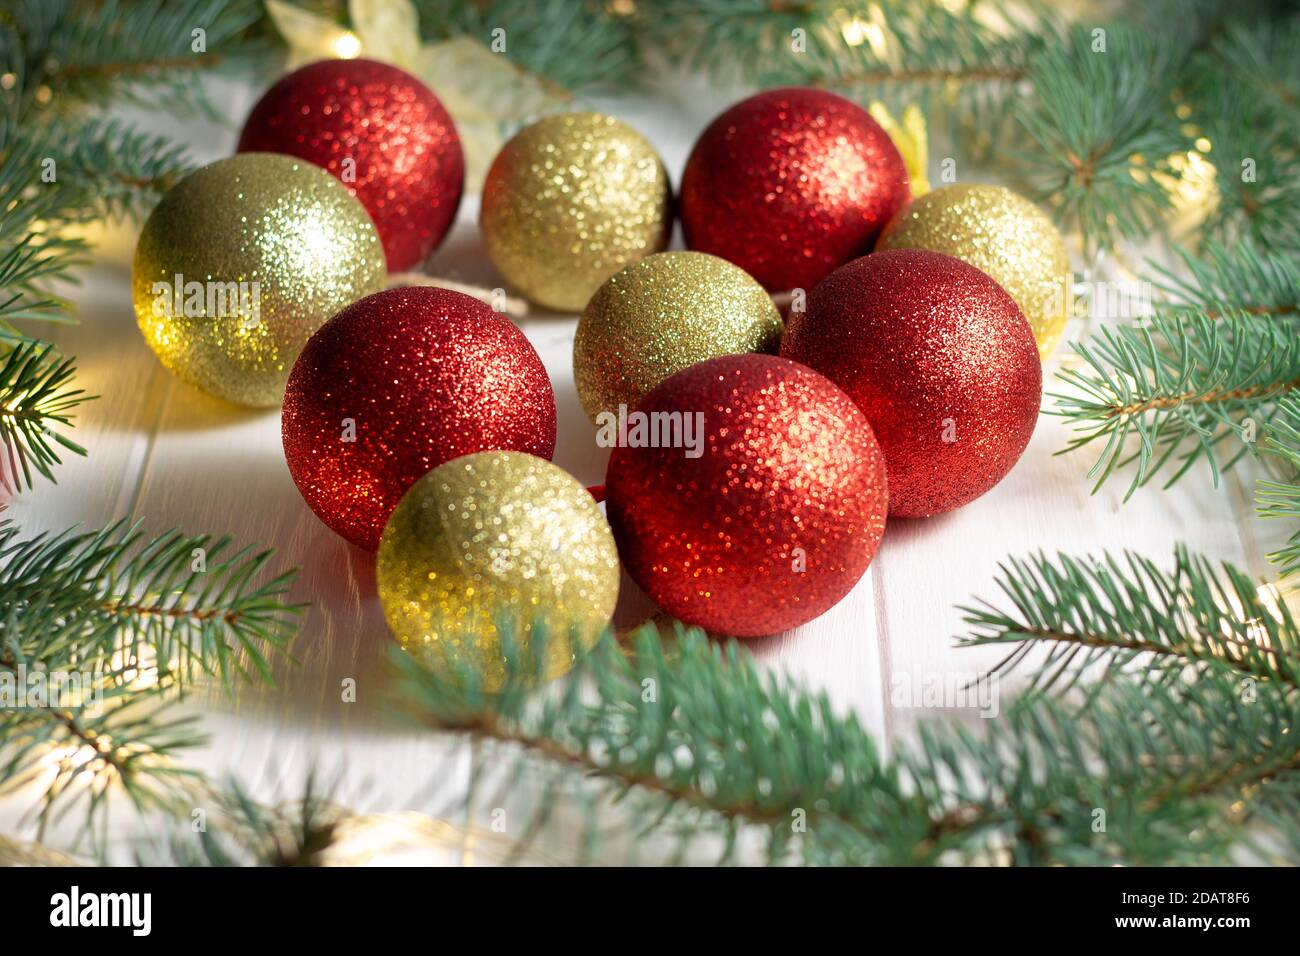 Green Branches Of A Christmas Tree With Led Light Bulbs Garland And Shiny Balls On A White Wooden Background Merry Christmas And Happy New Year Conc Stock Photo Alamy